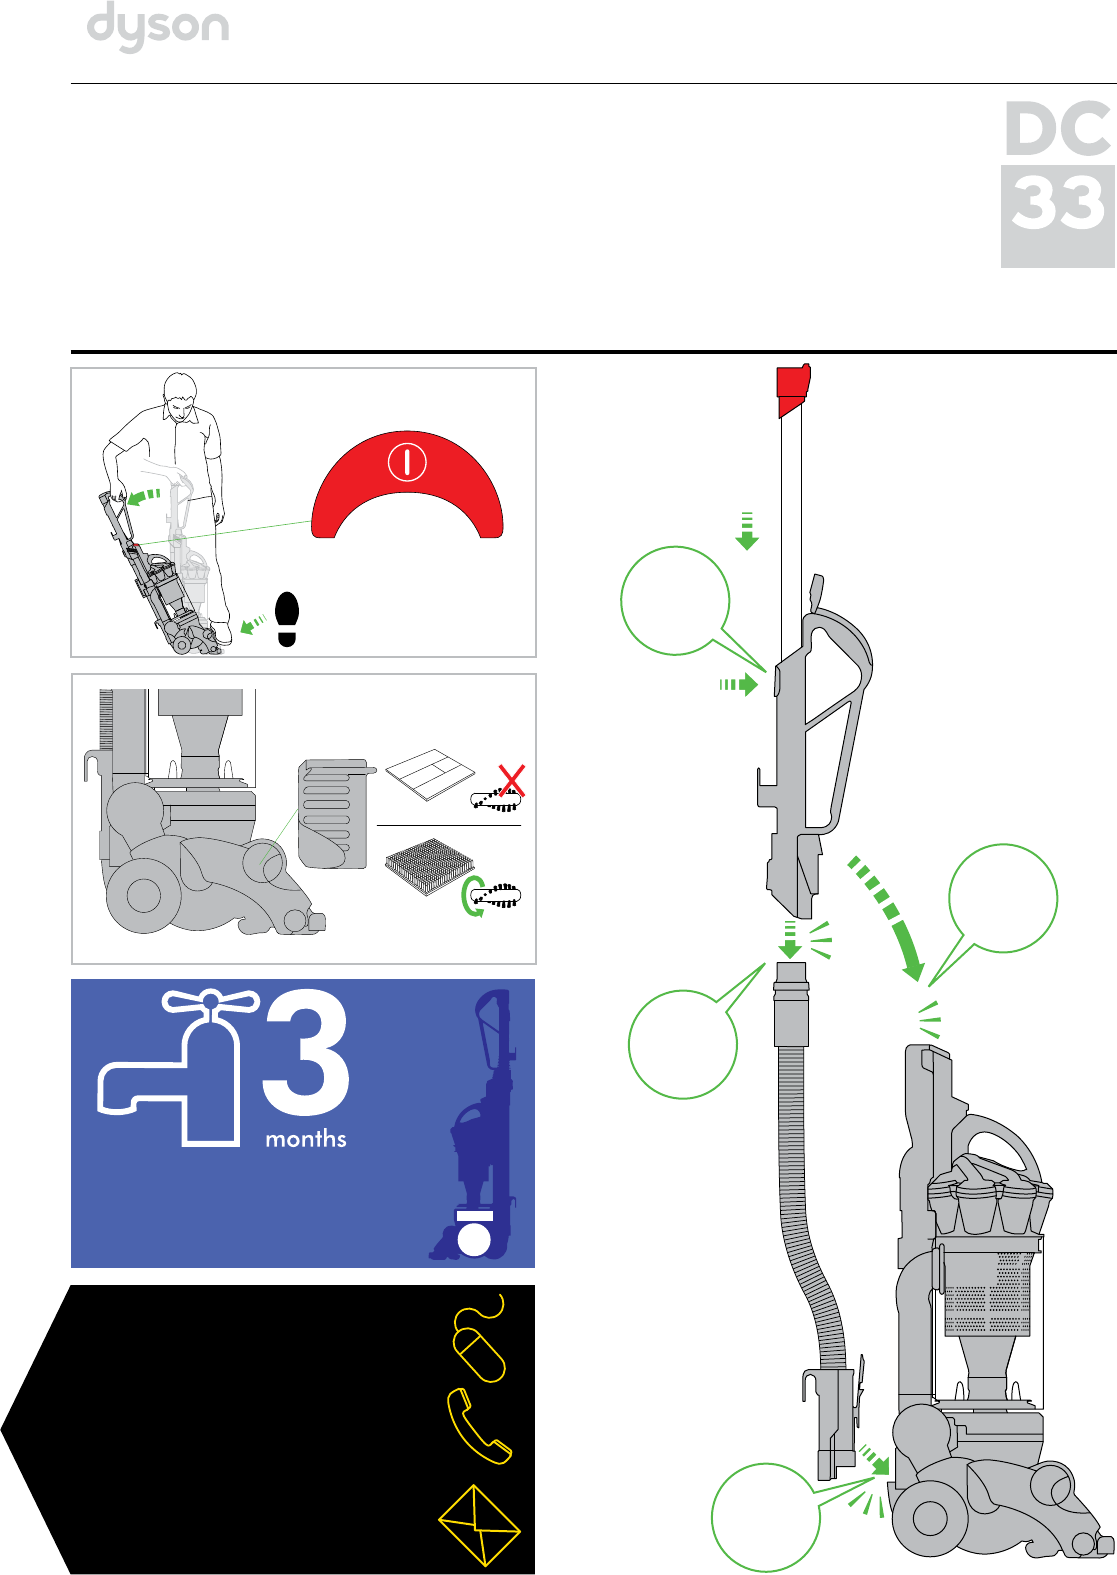 dyson vacuum cleaner dc33 user guide manualsonline com rh homeappliance manualsonline com dyson dc33 user guide dyson dc33 user manual